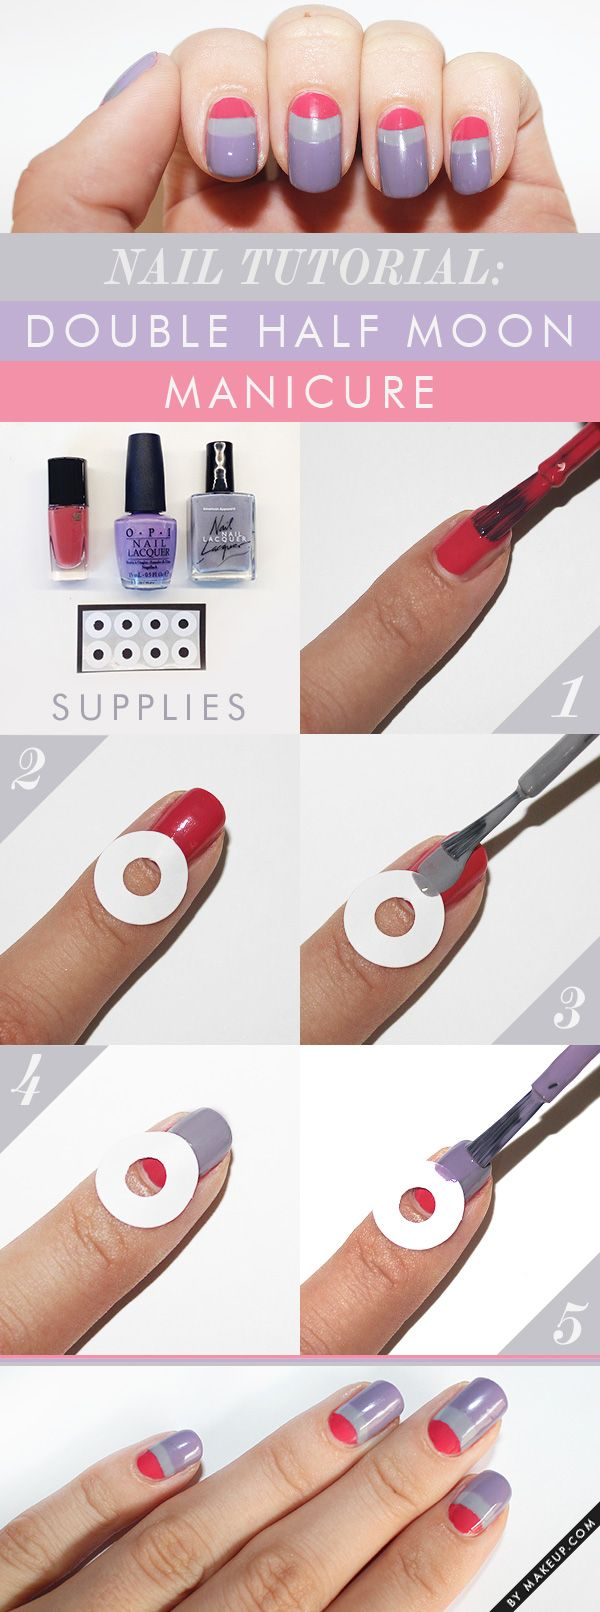 Manicure Monday: Double Half Moon Manicure